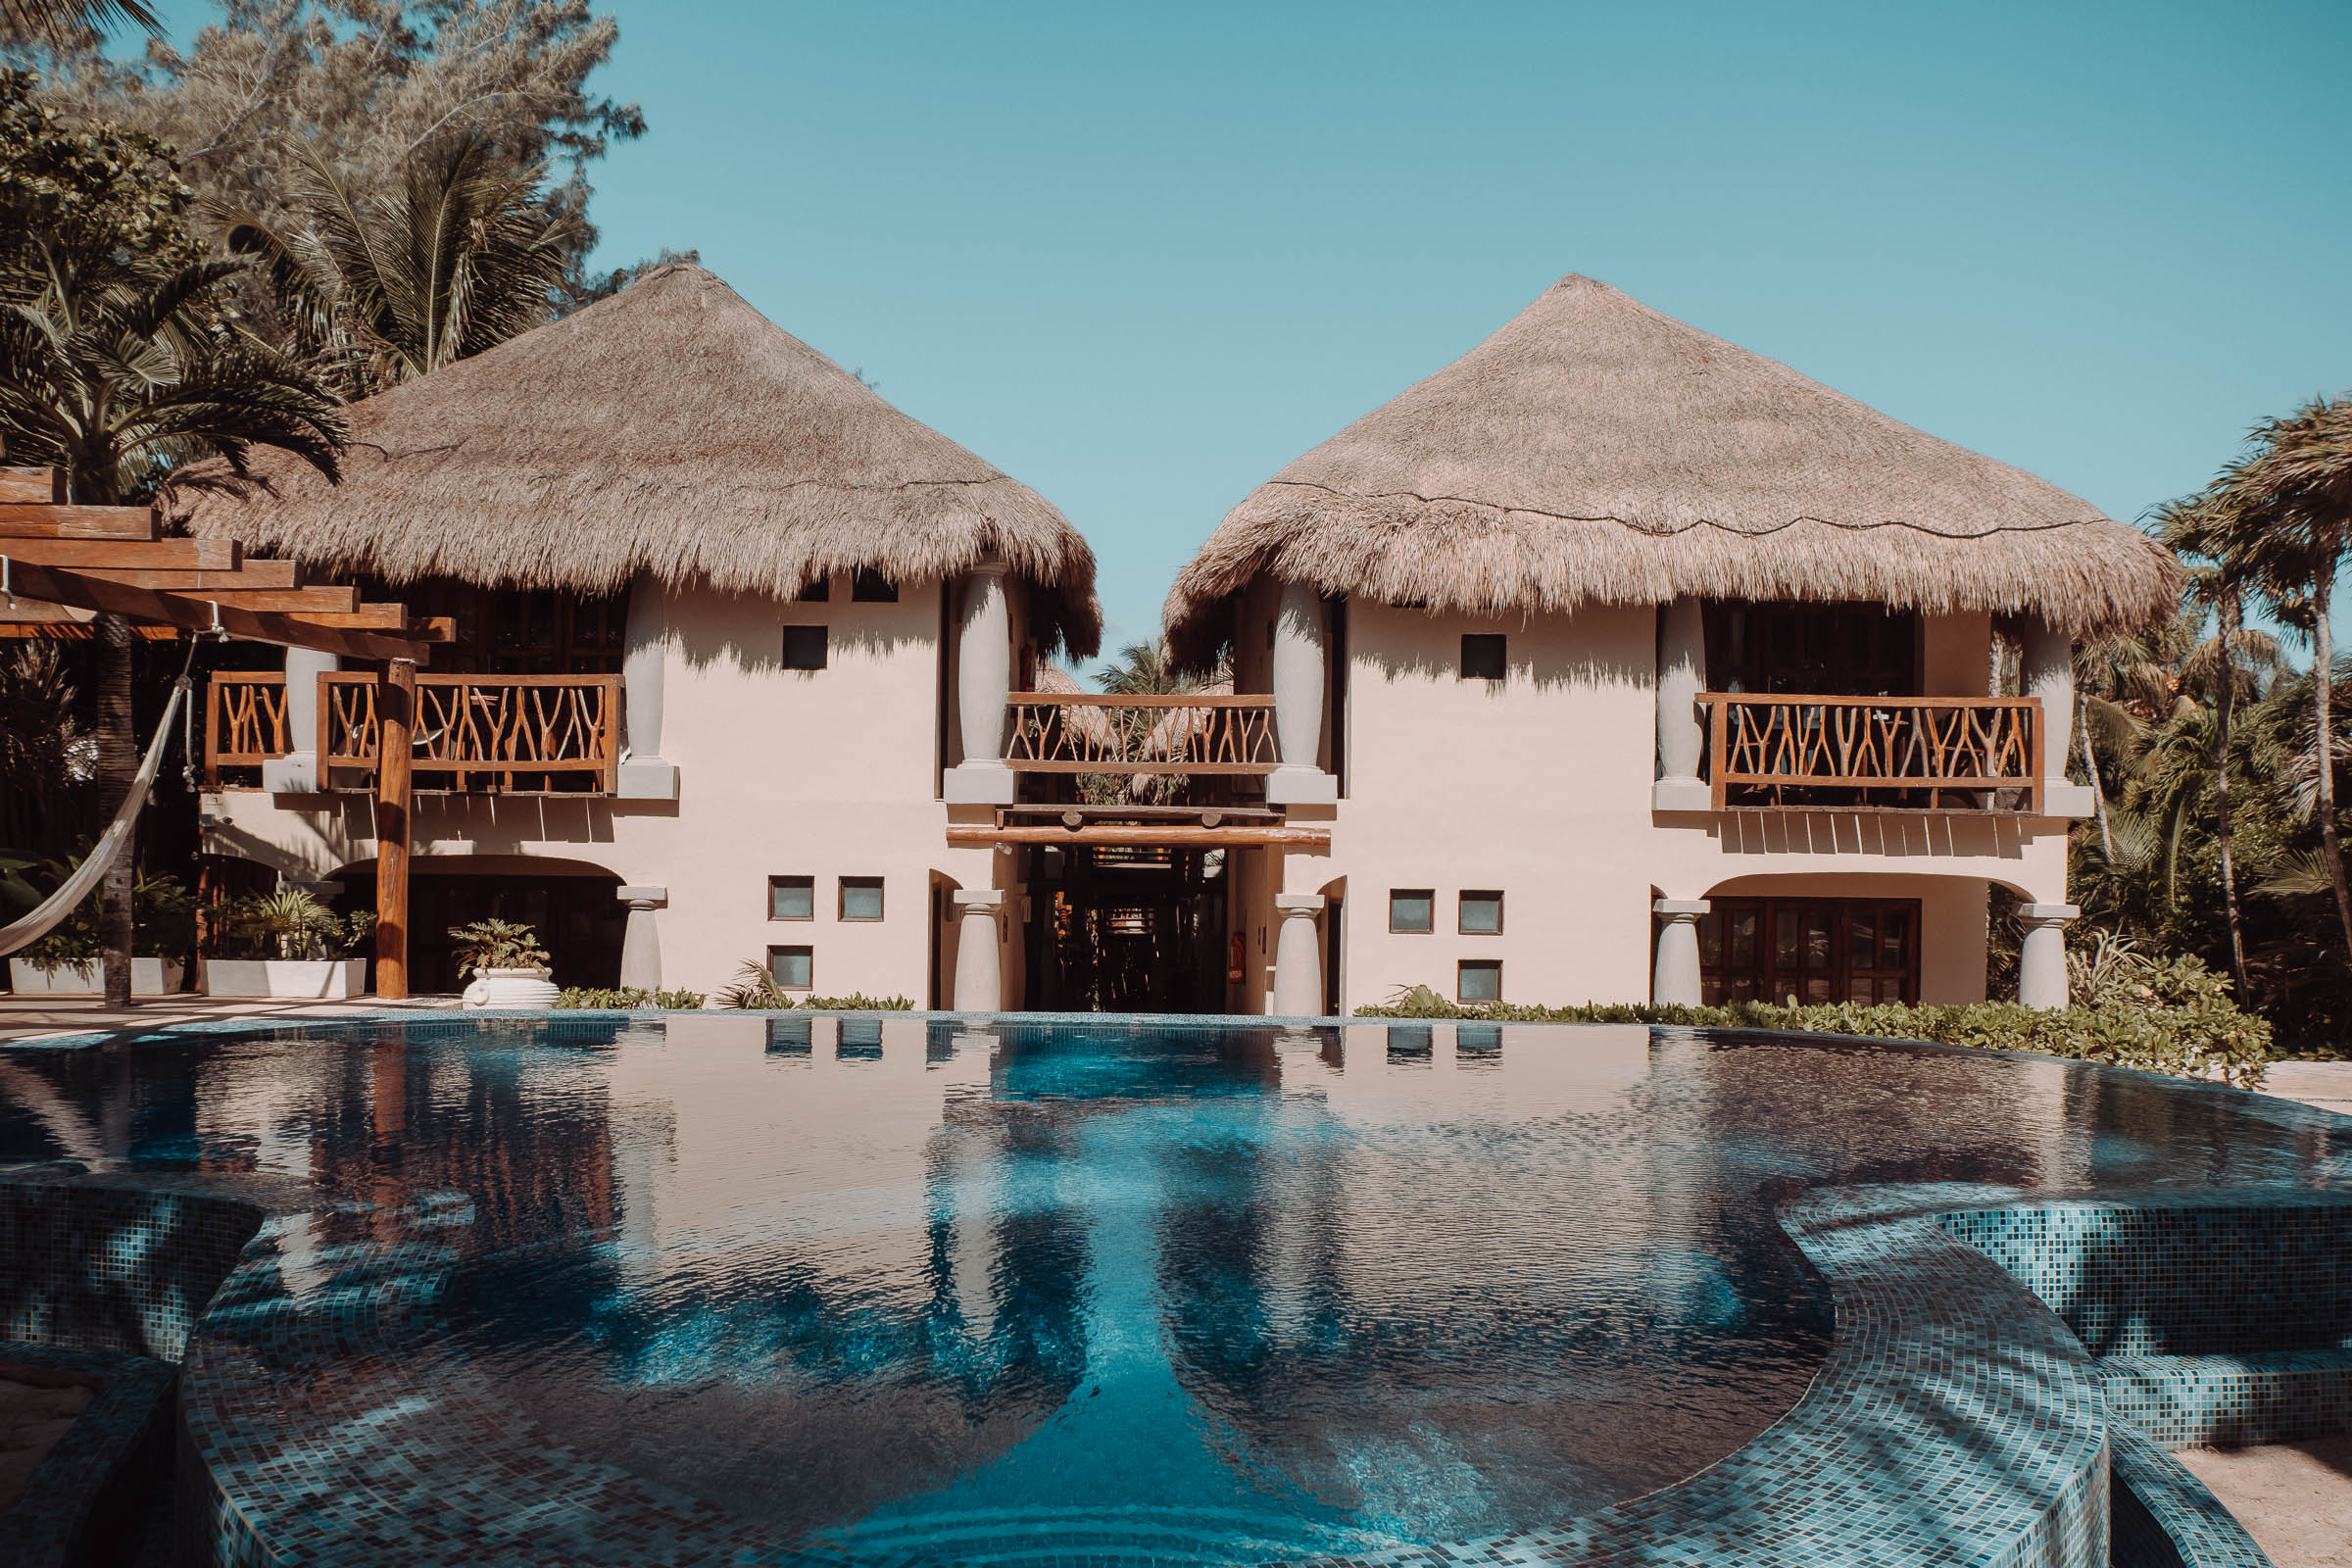 Chacon Images_Mexico2019_Web-69.jpg